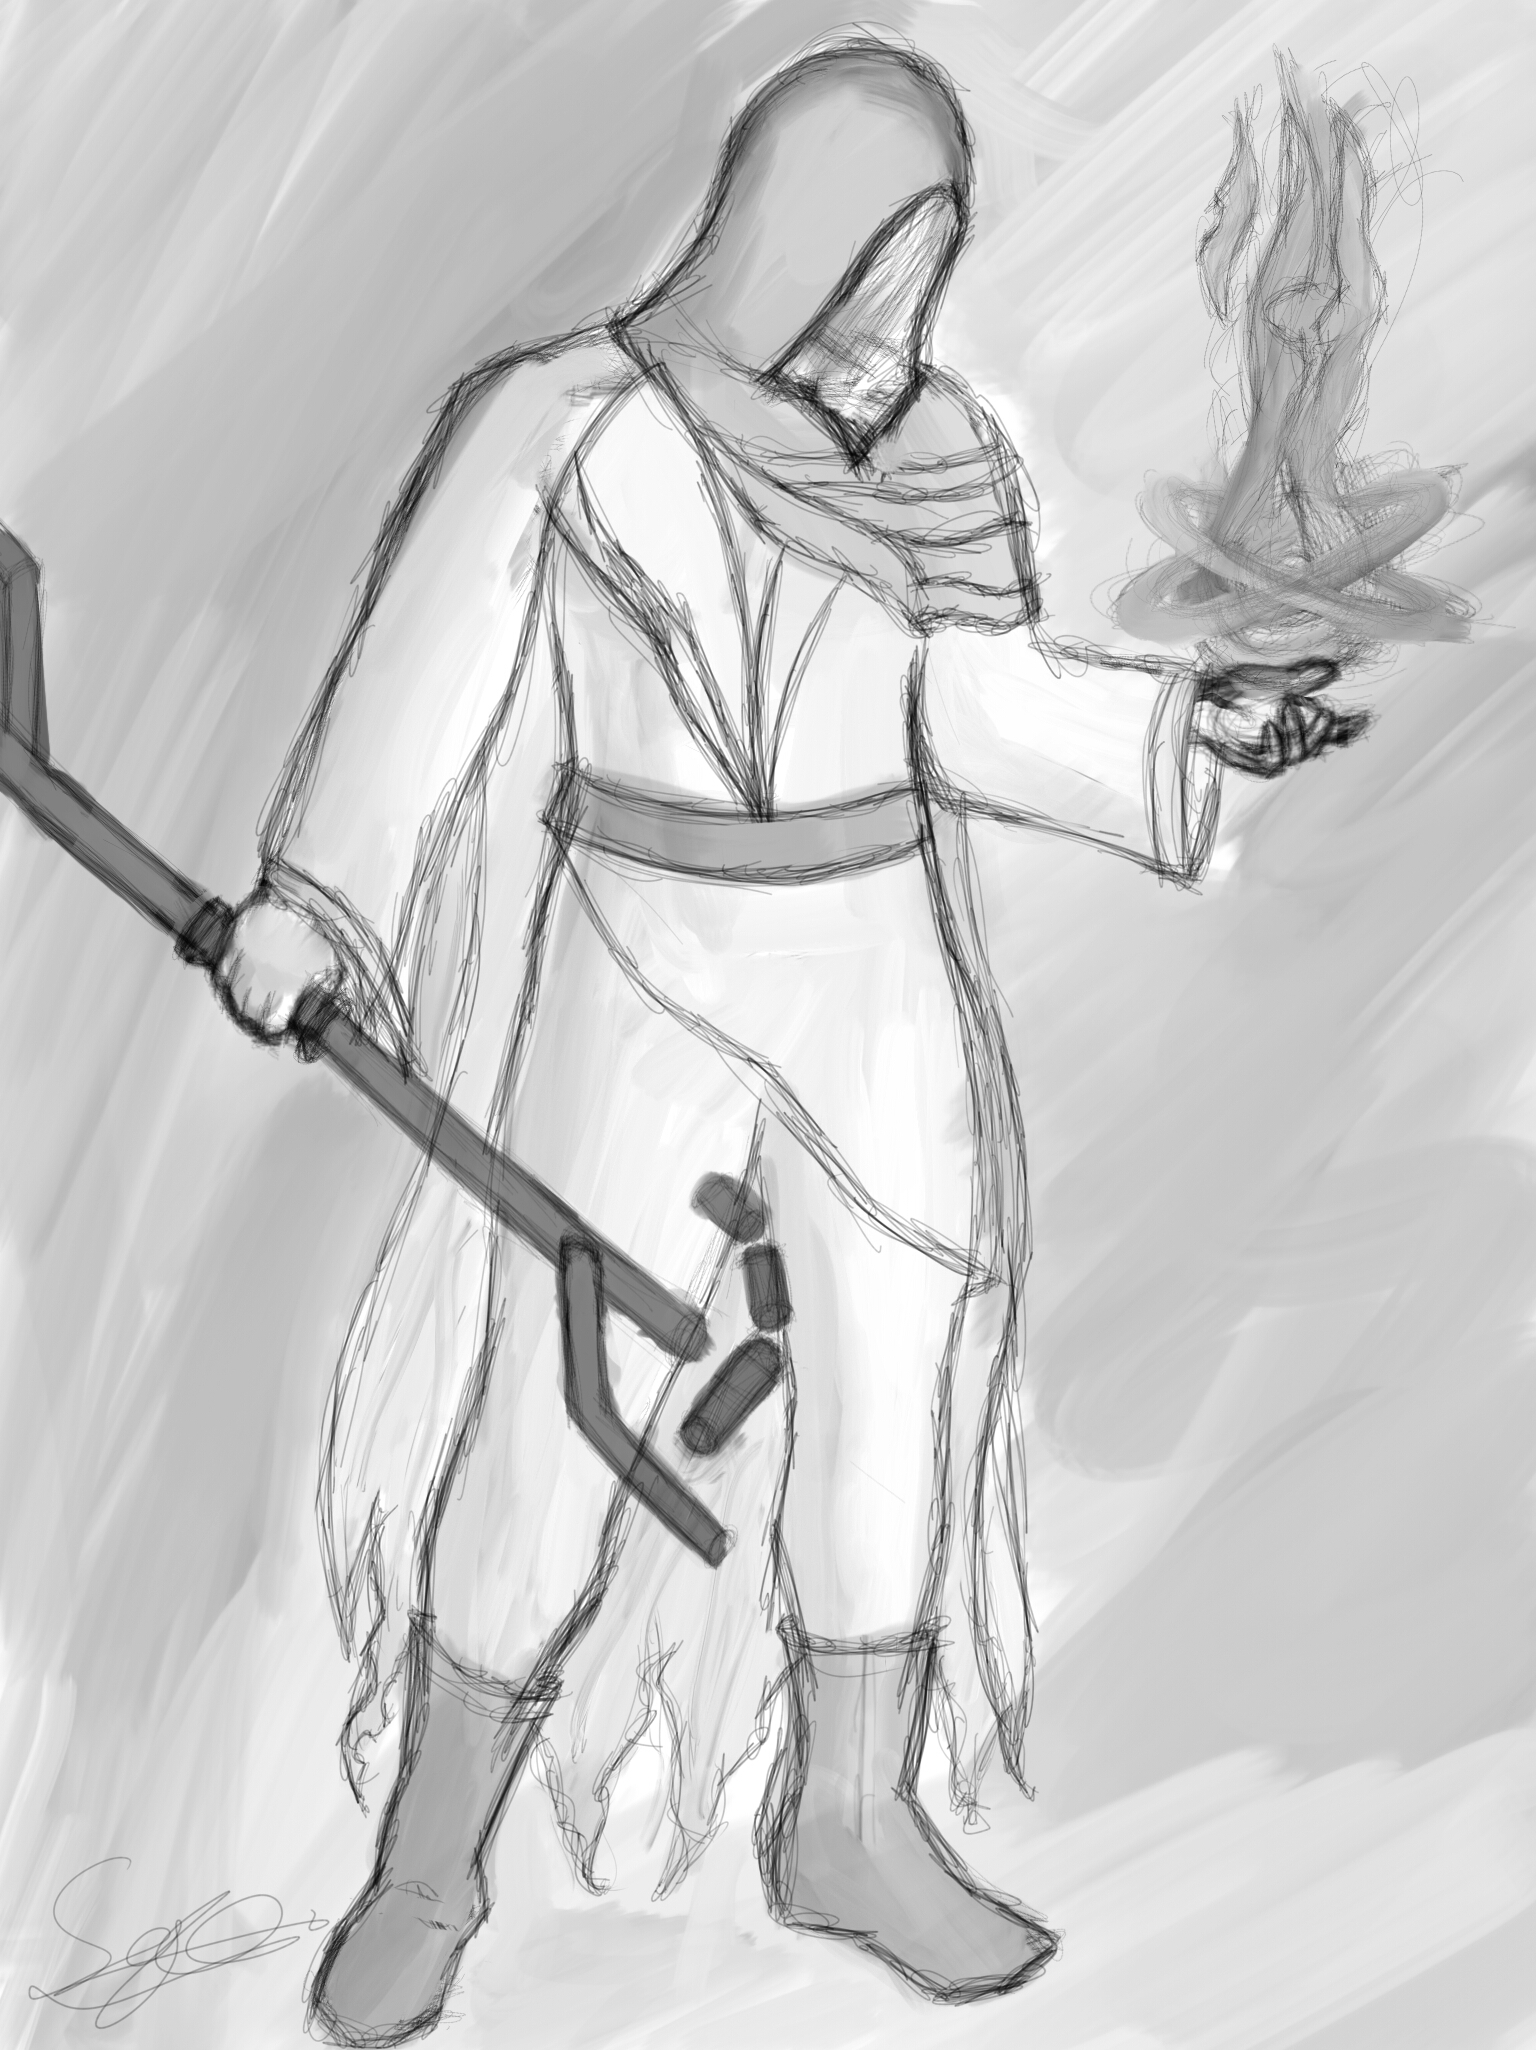 Futuristic Mage Sketch 3